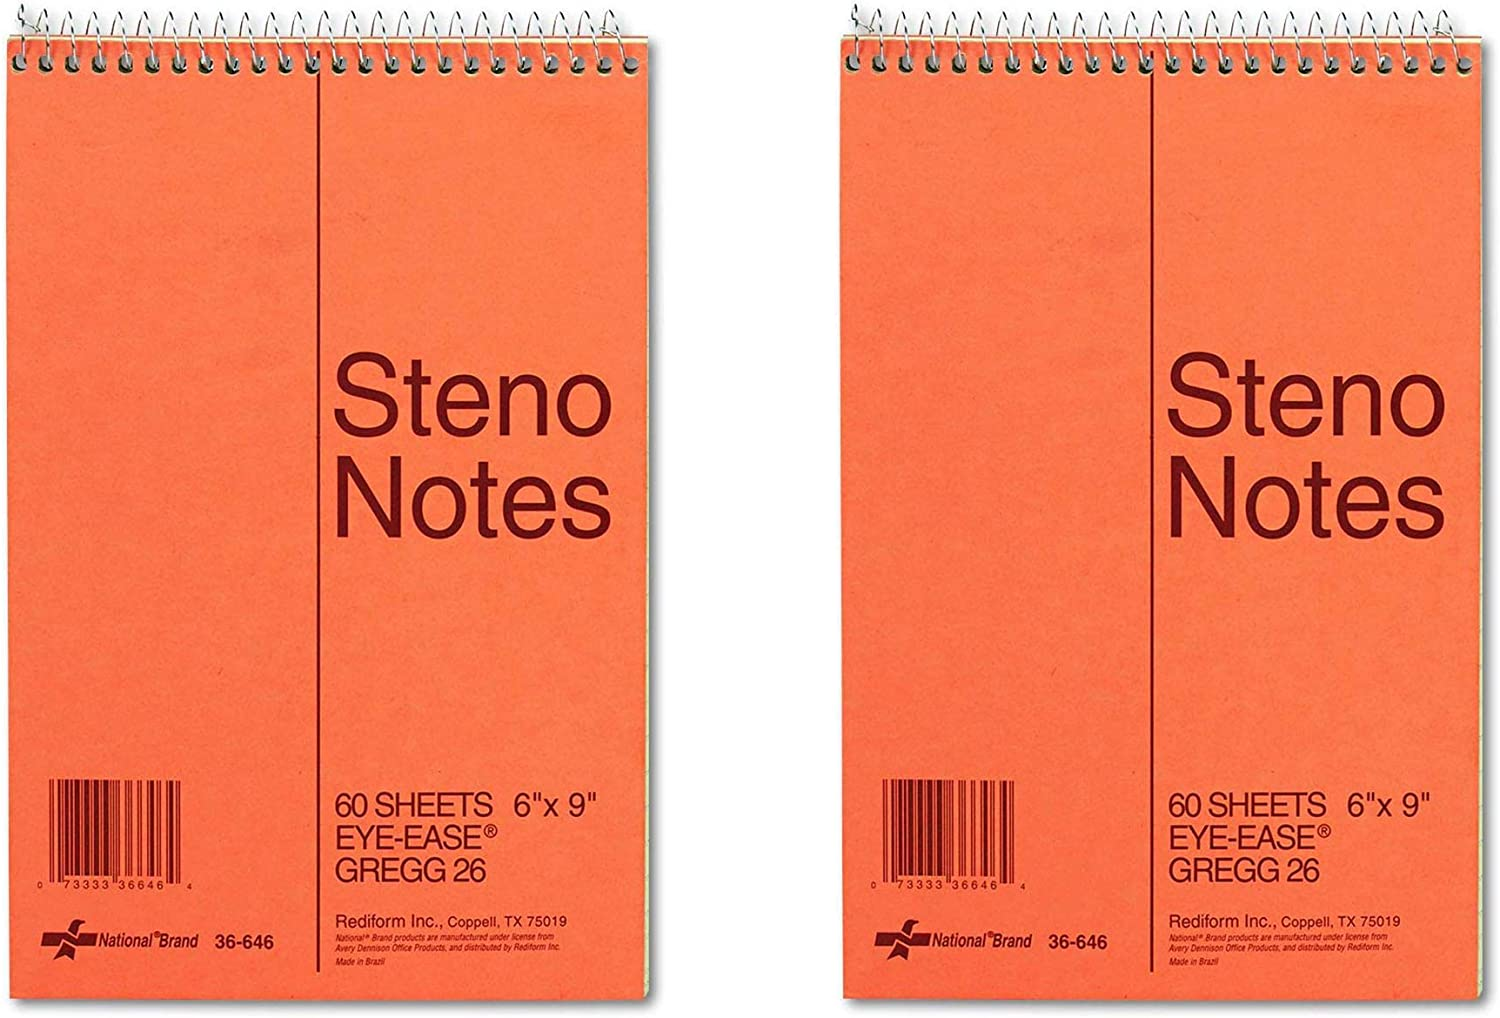 NATIONAL Brown Board Cover Steno Notebook Green Paper 60 Sheets 6 x 9 Inches 36646 Gregg